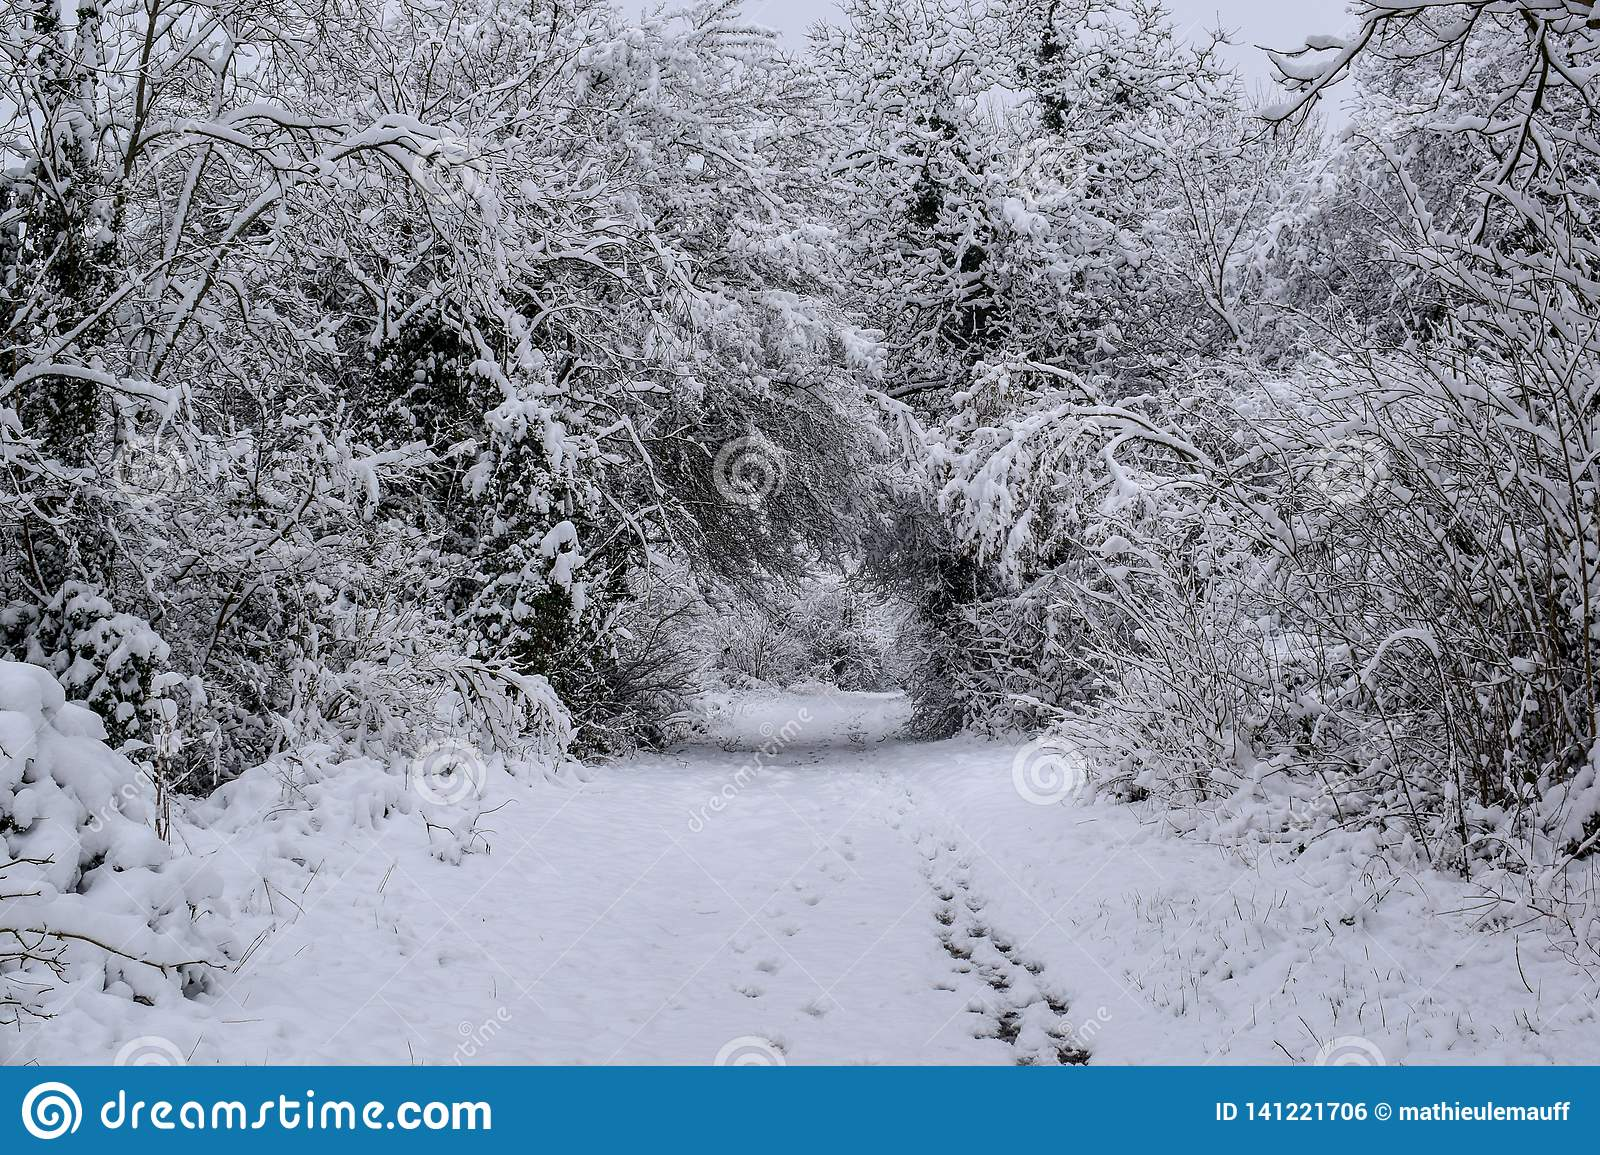 Snowy Forest Trail in campagna francese durante il Natale condisce/inverno